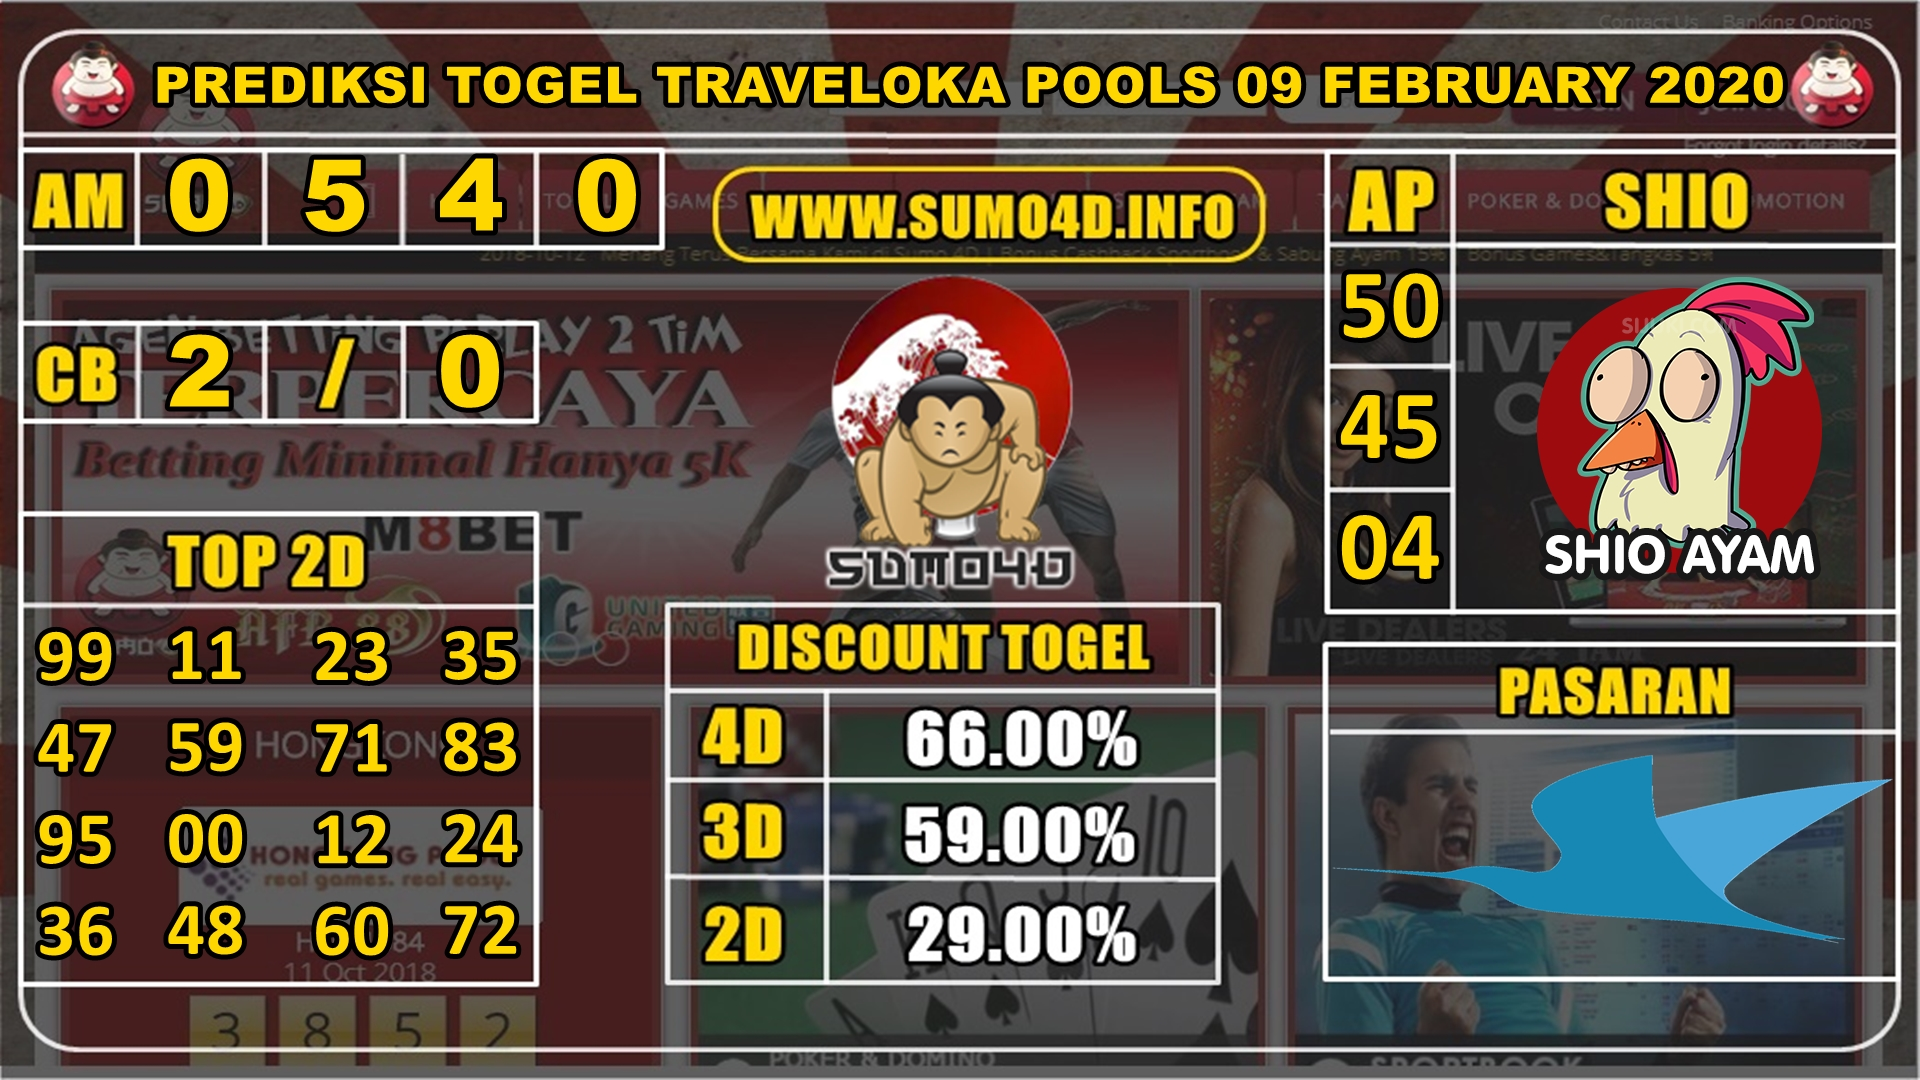 PREDIKSI TOGEL TRAVELOKA POOLS 09 FEBRUARY 2020